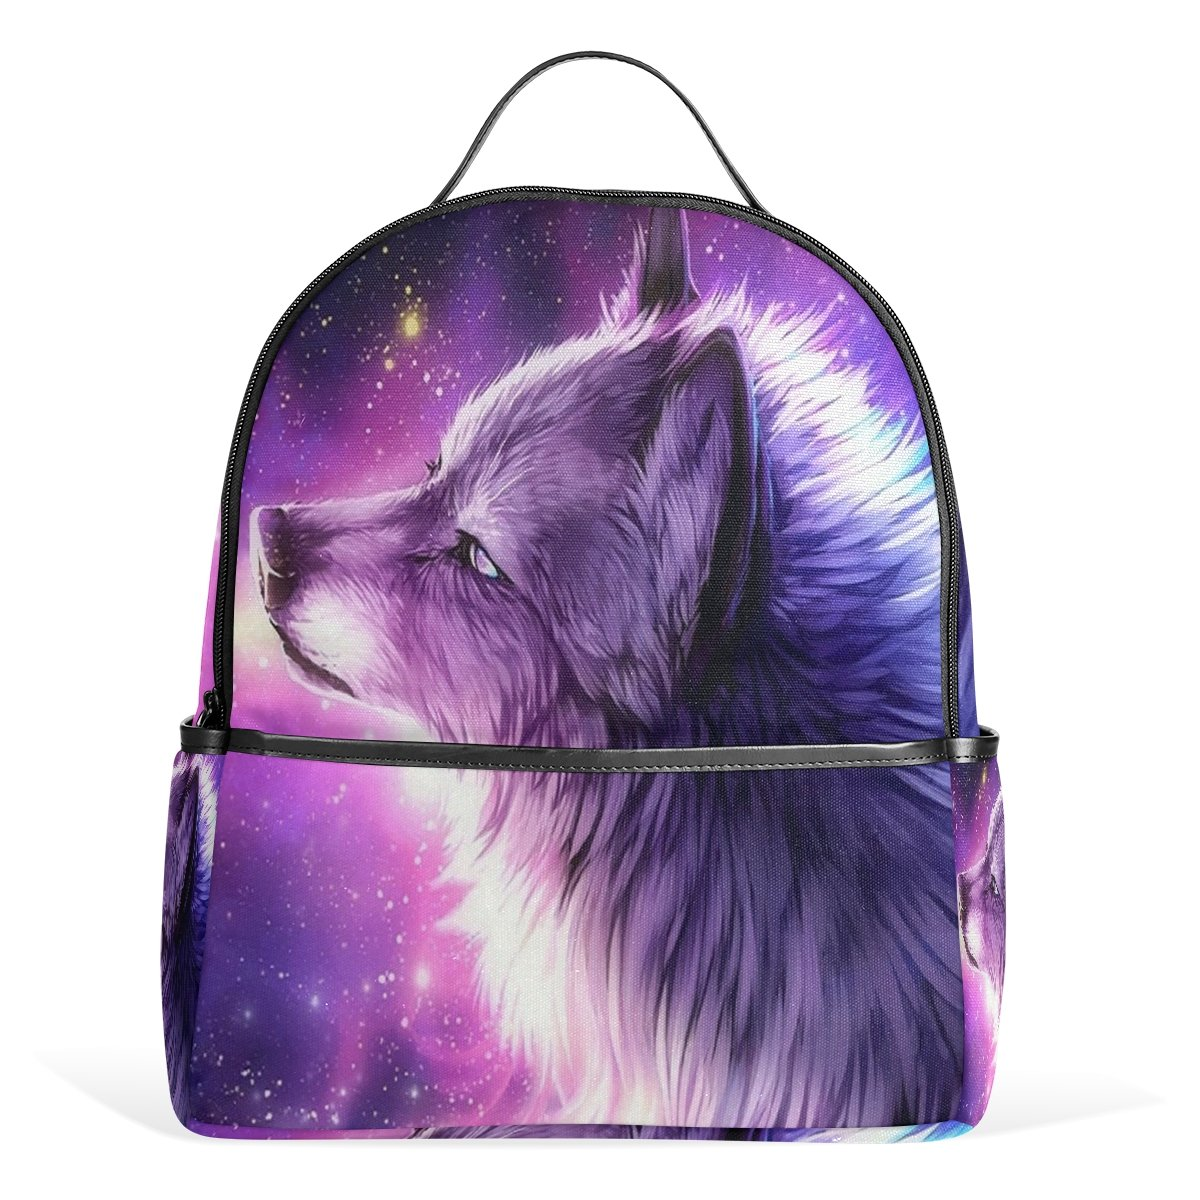 a4f484a5547 Amazon.com   Donnapink Cool Galaxy Wolf In Stary Universe School ...